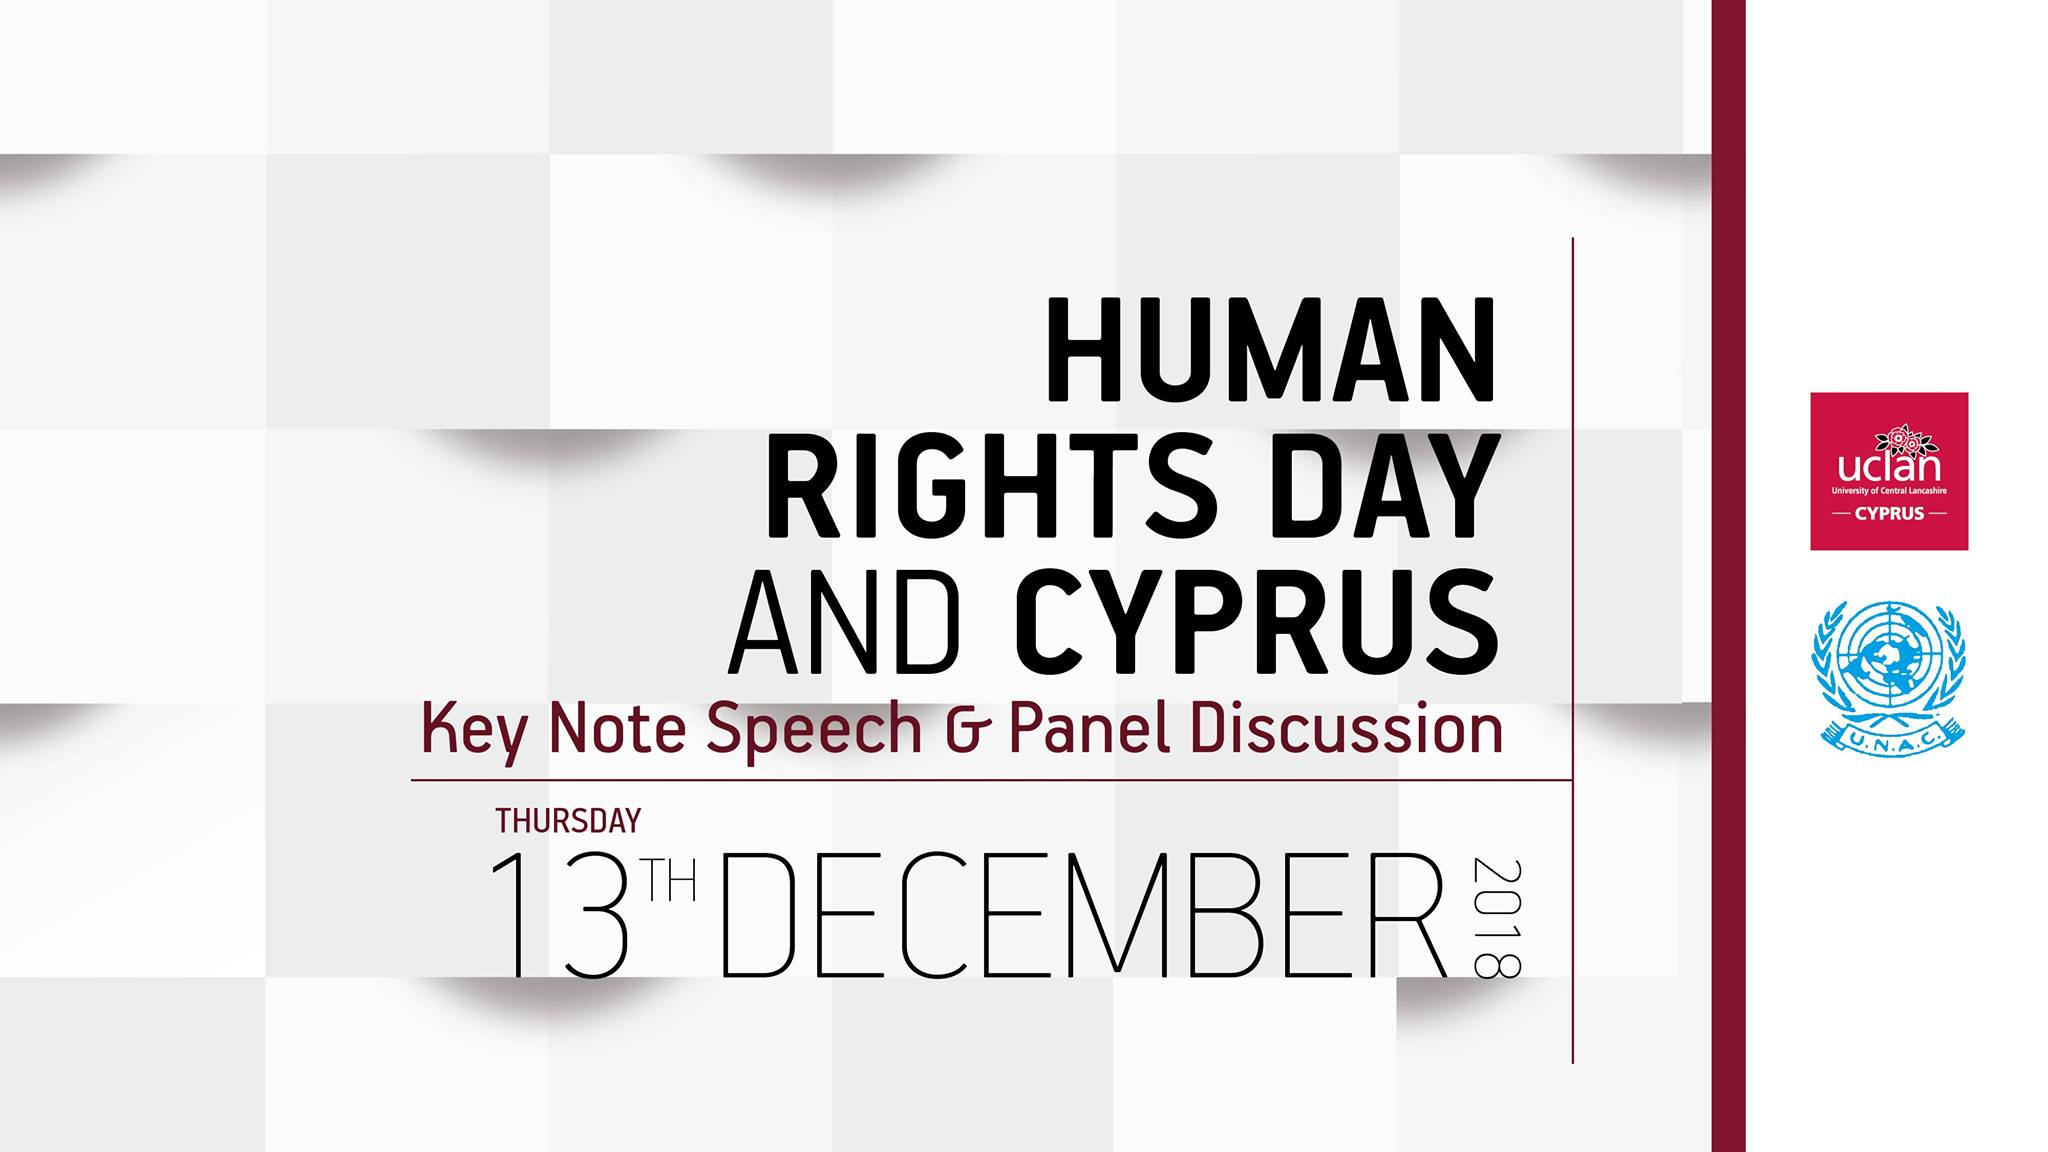 Key Note Speech & Panel Discussion: Human Rights Day and